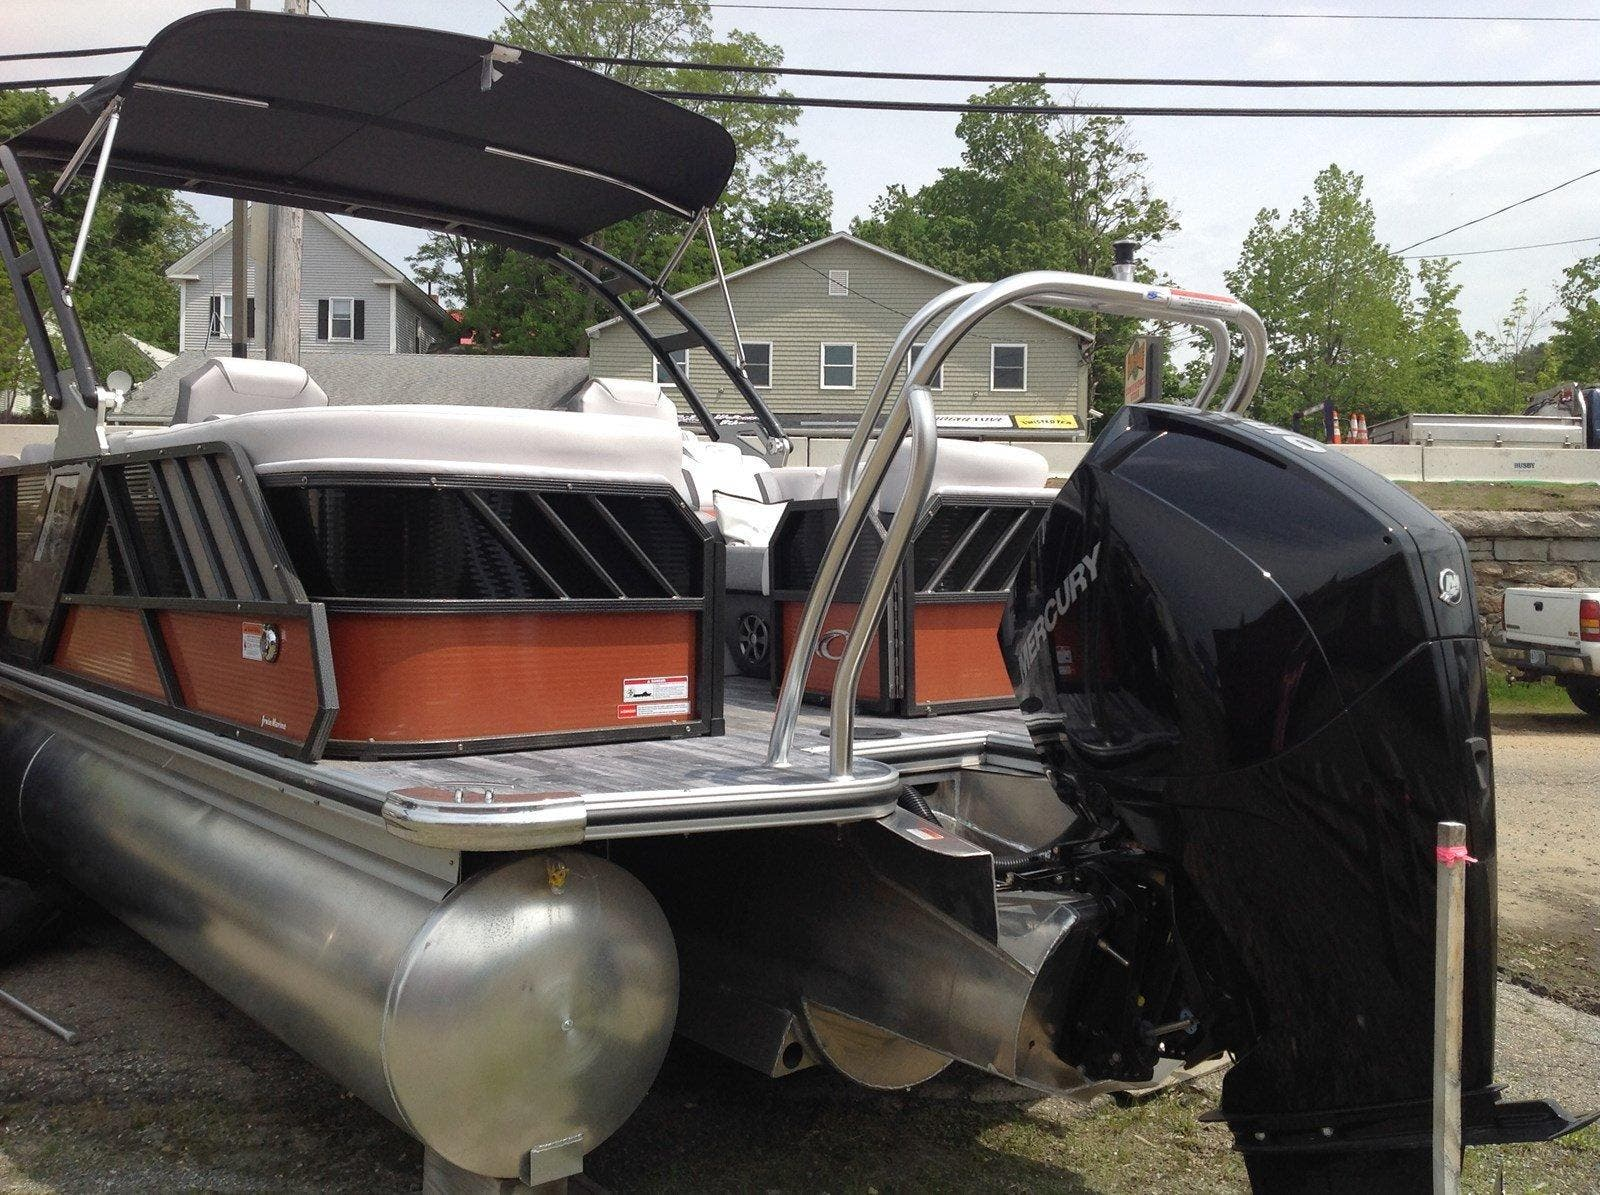 2019 Crest boat for sale, model of the boat is Caliber 230slc & Image # 4 of 13